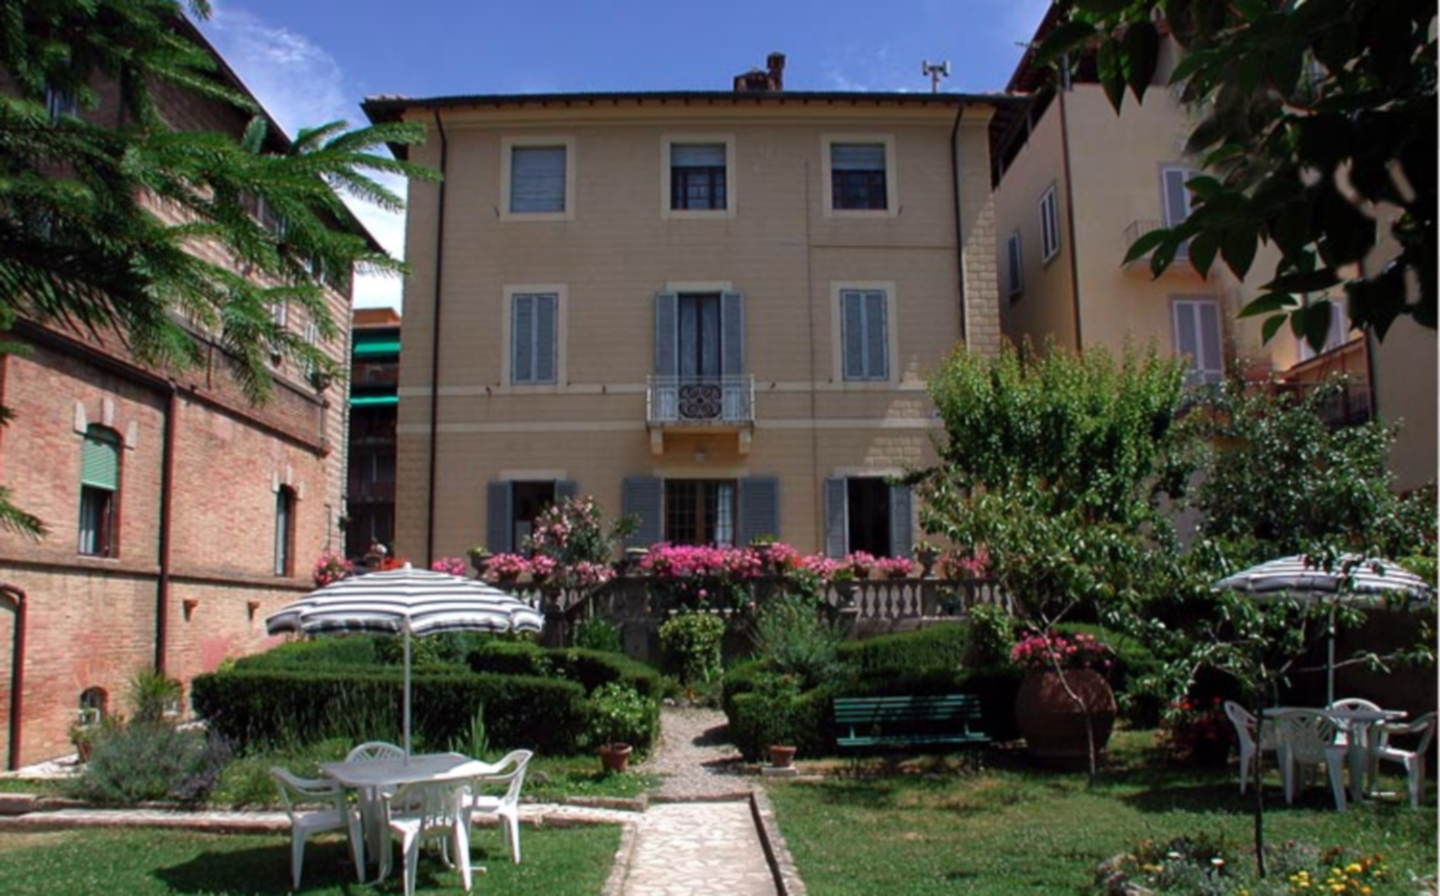 A house with bushes in front of a building at Villa Fiorita.